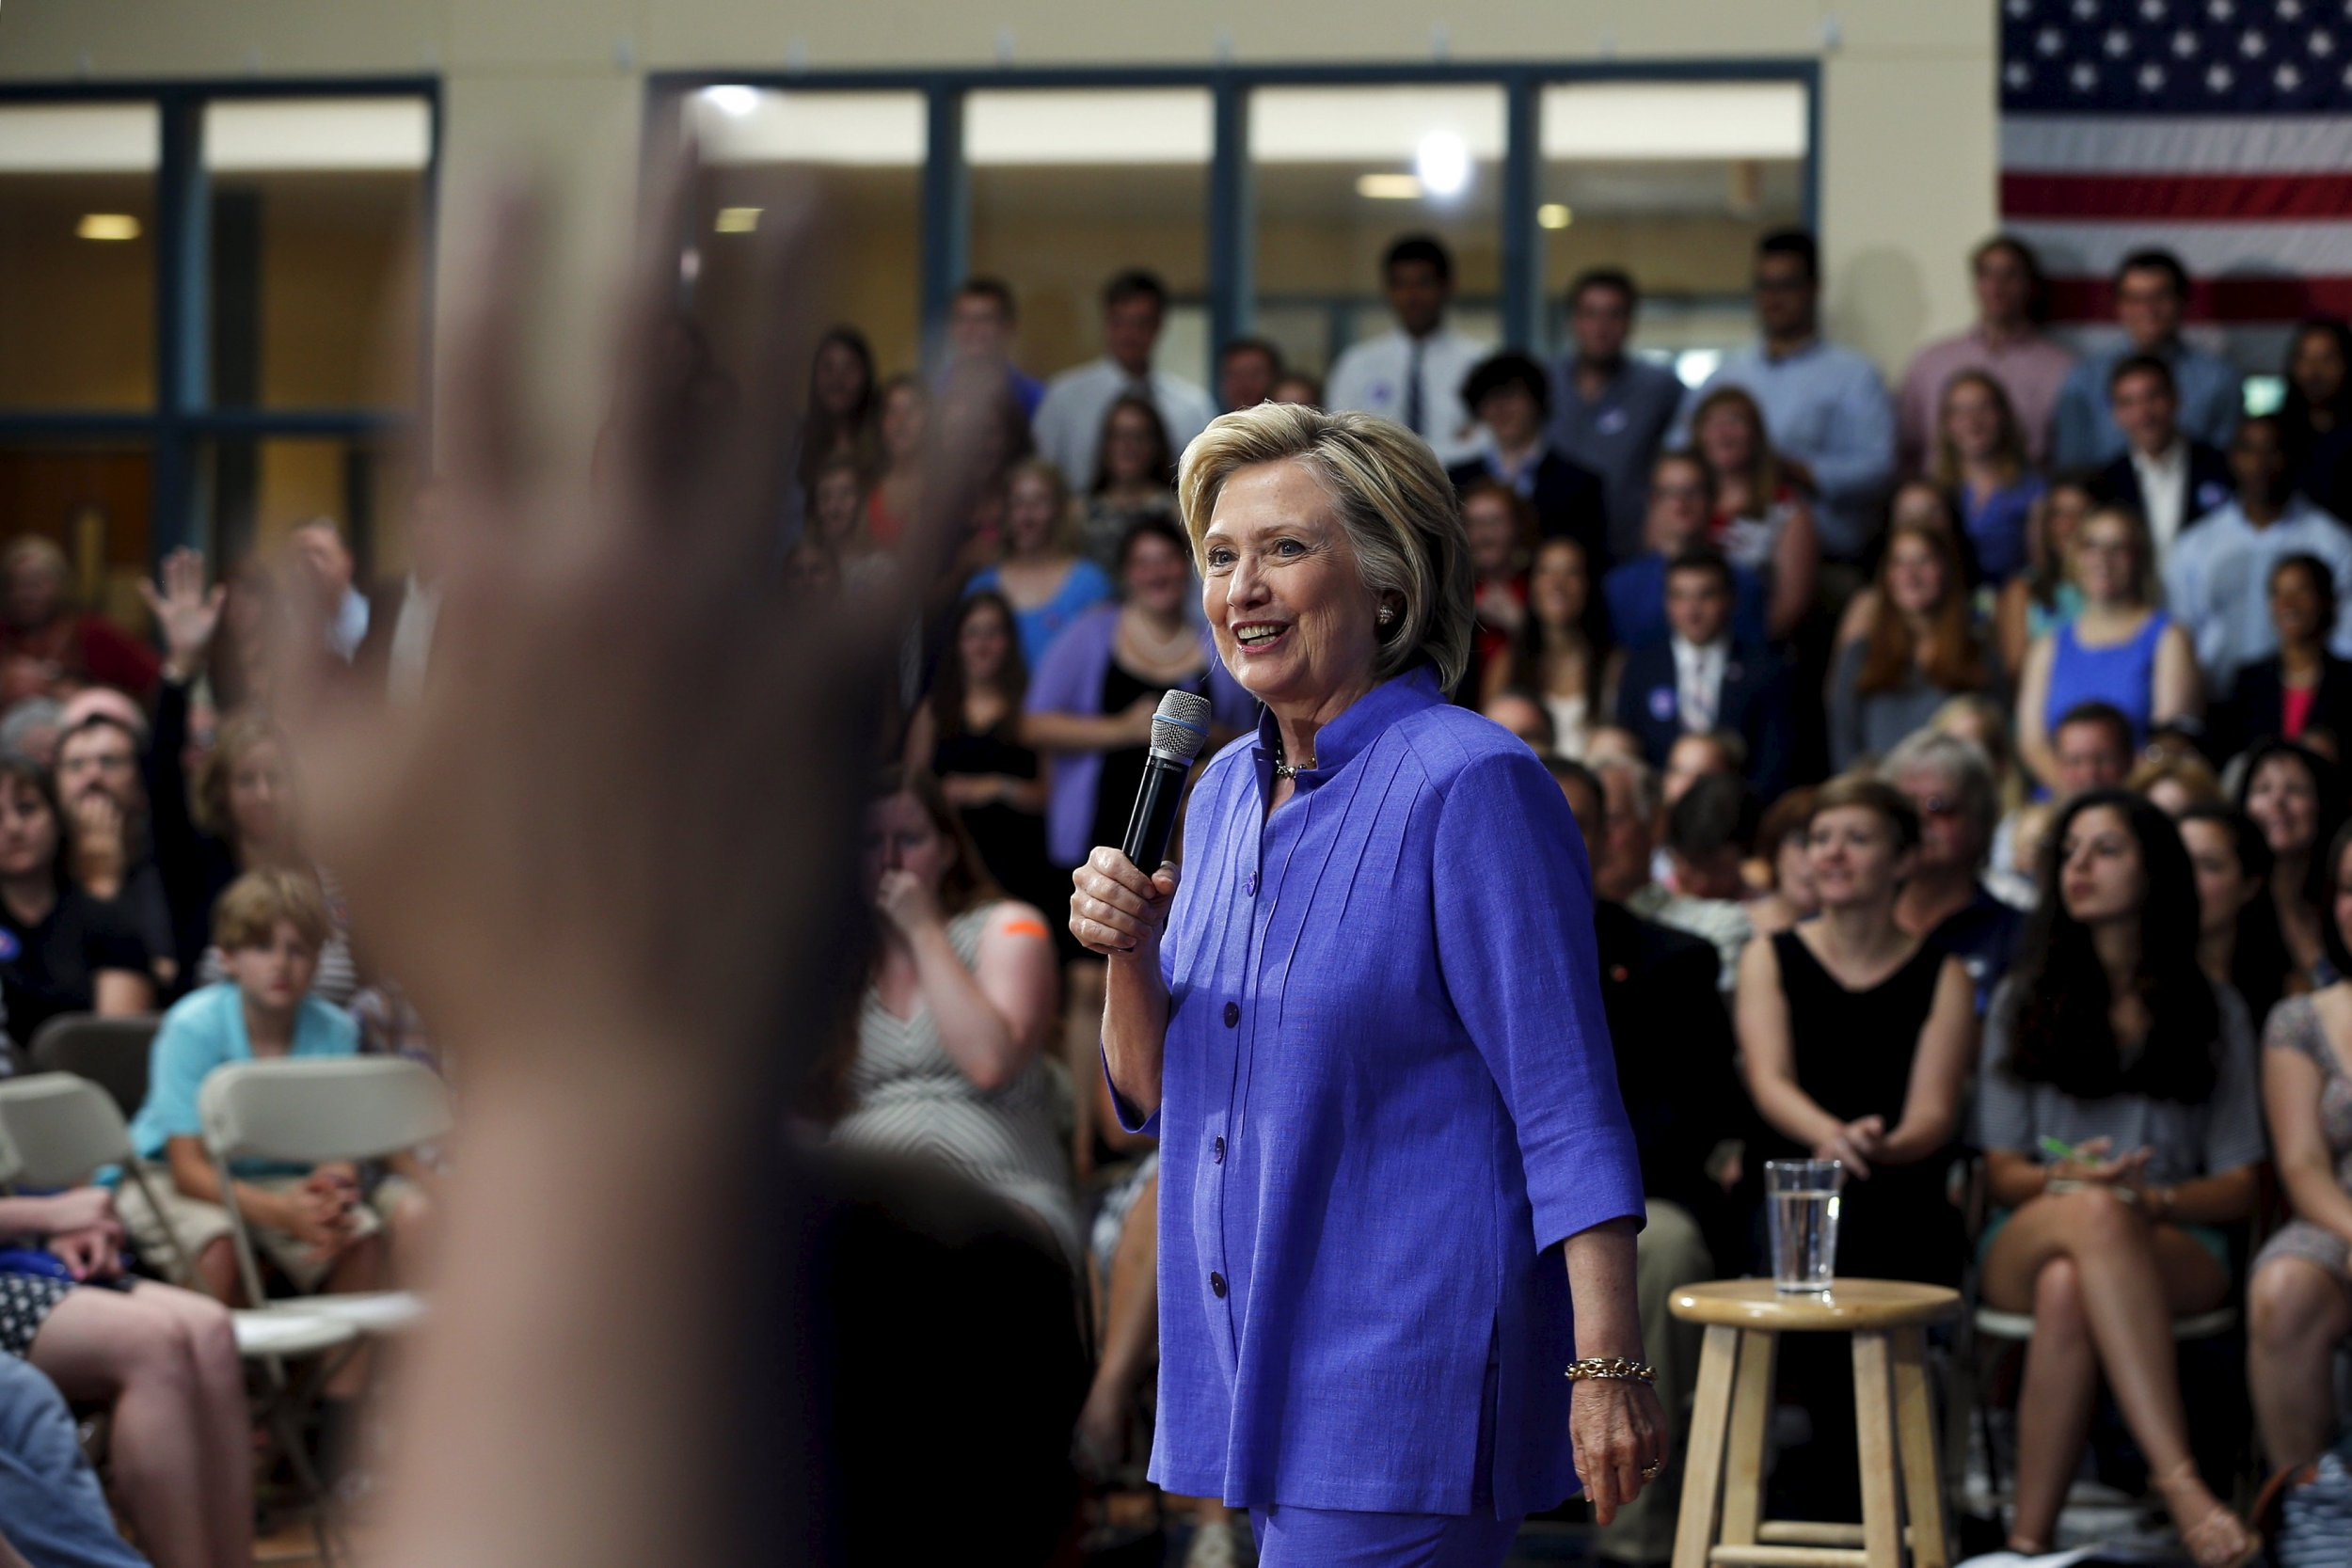 Clinton's plan for colleges 8_10_2015